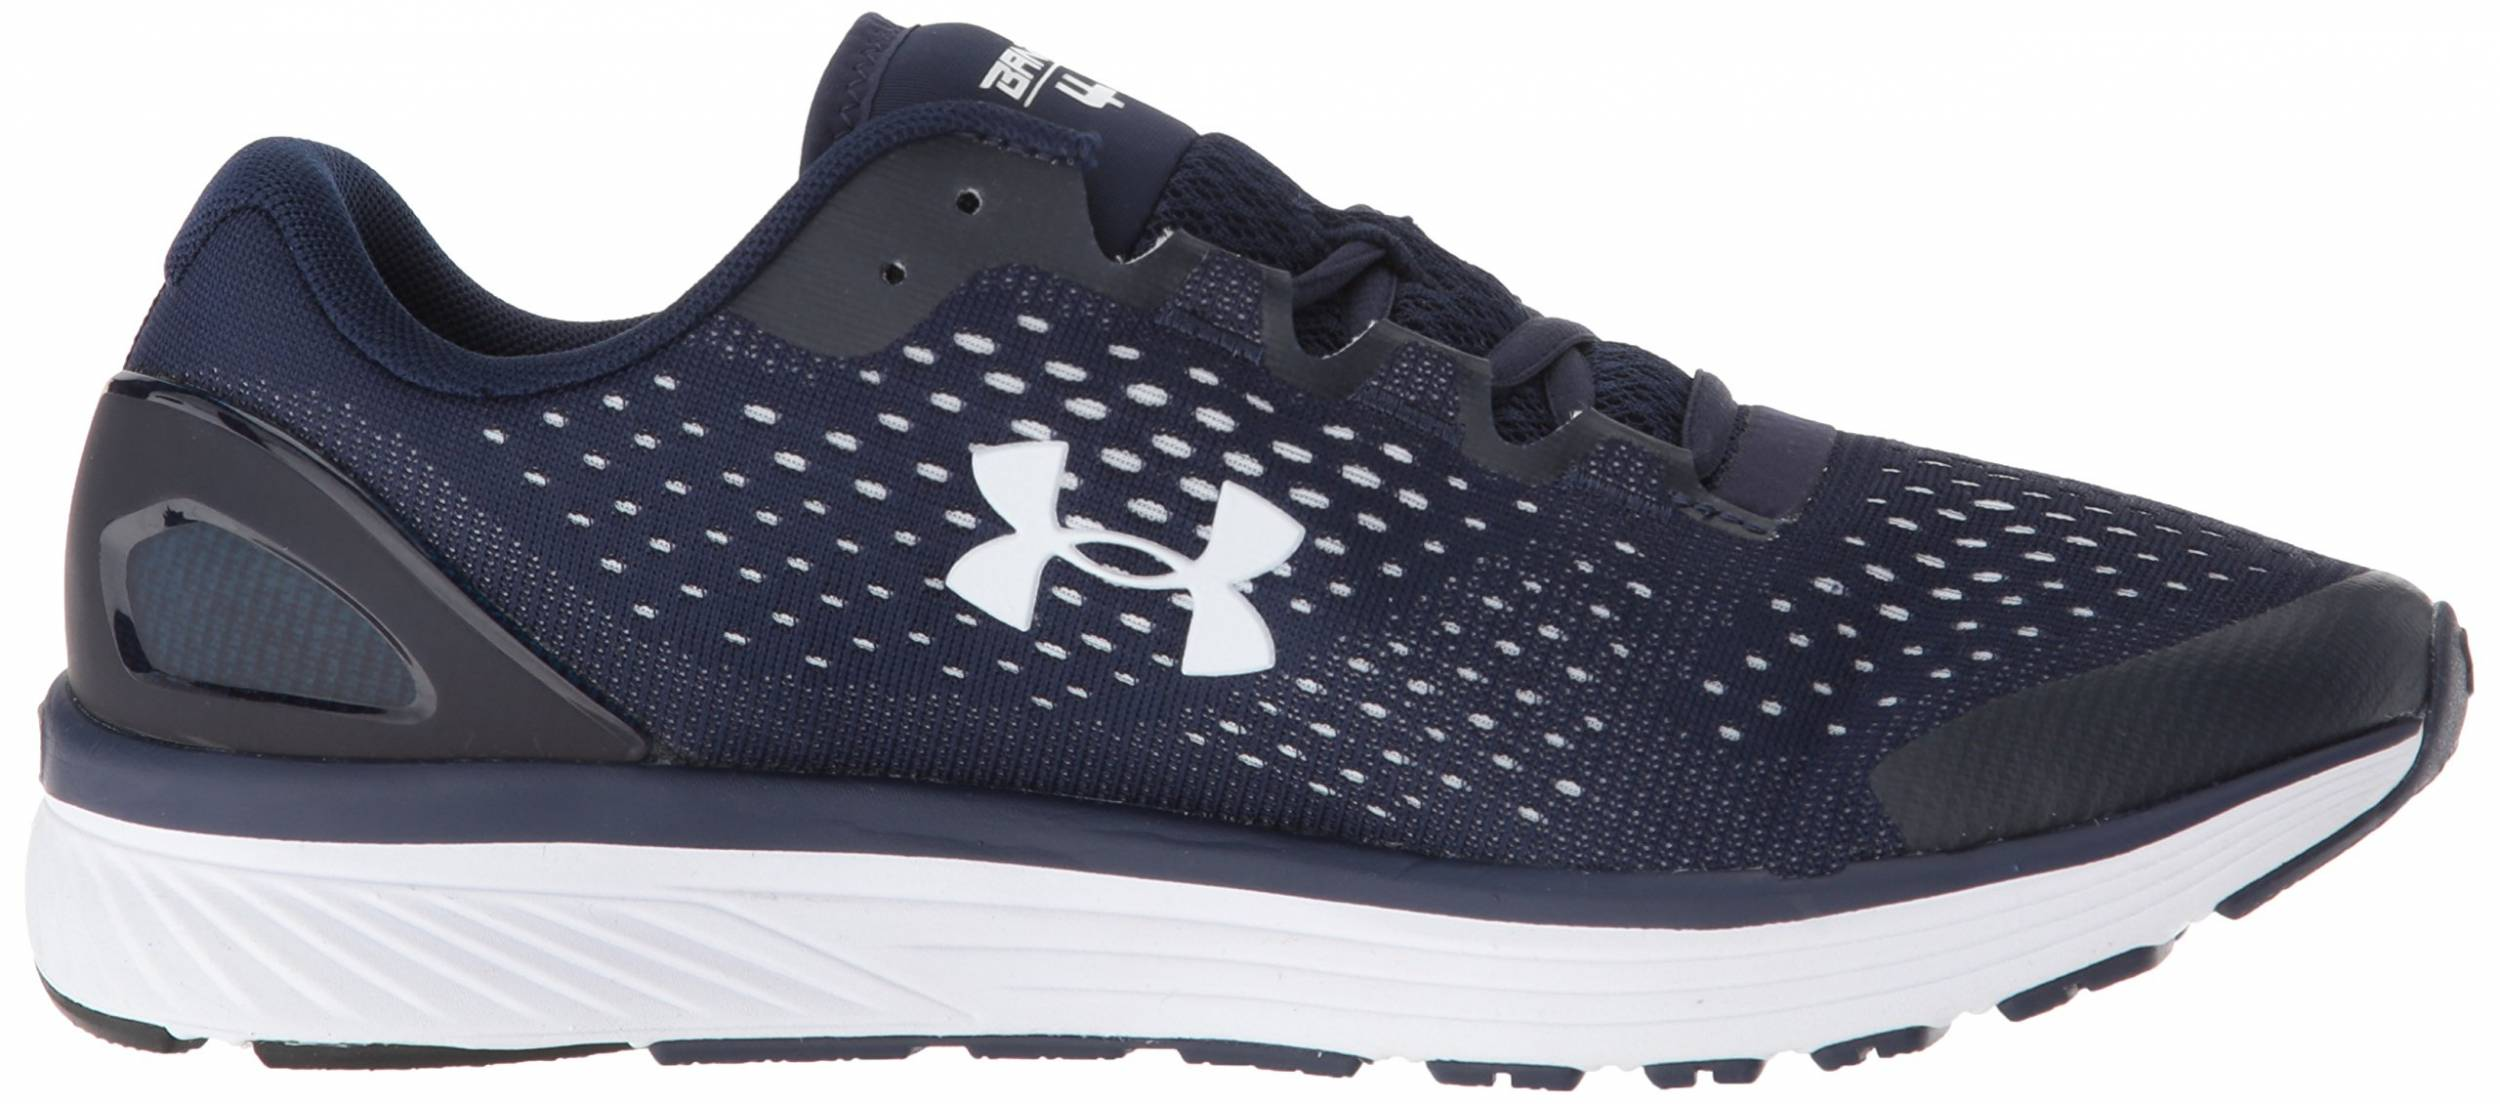 Under Armour Charged Bandit 4 Team